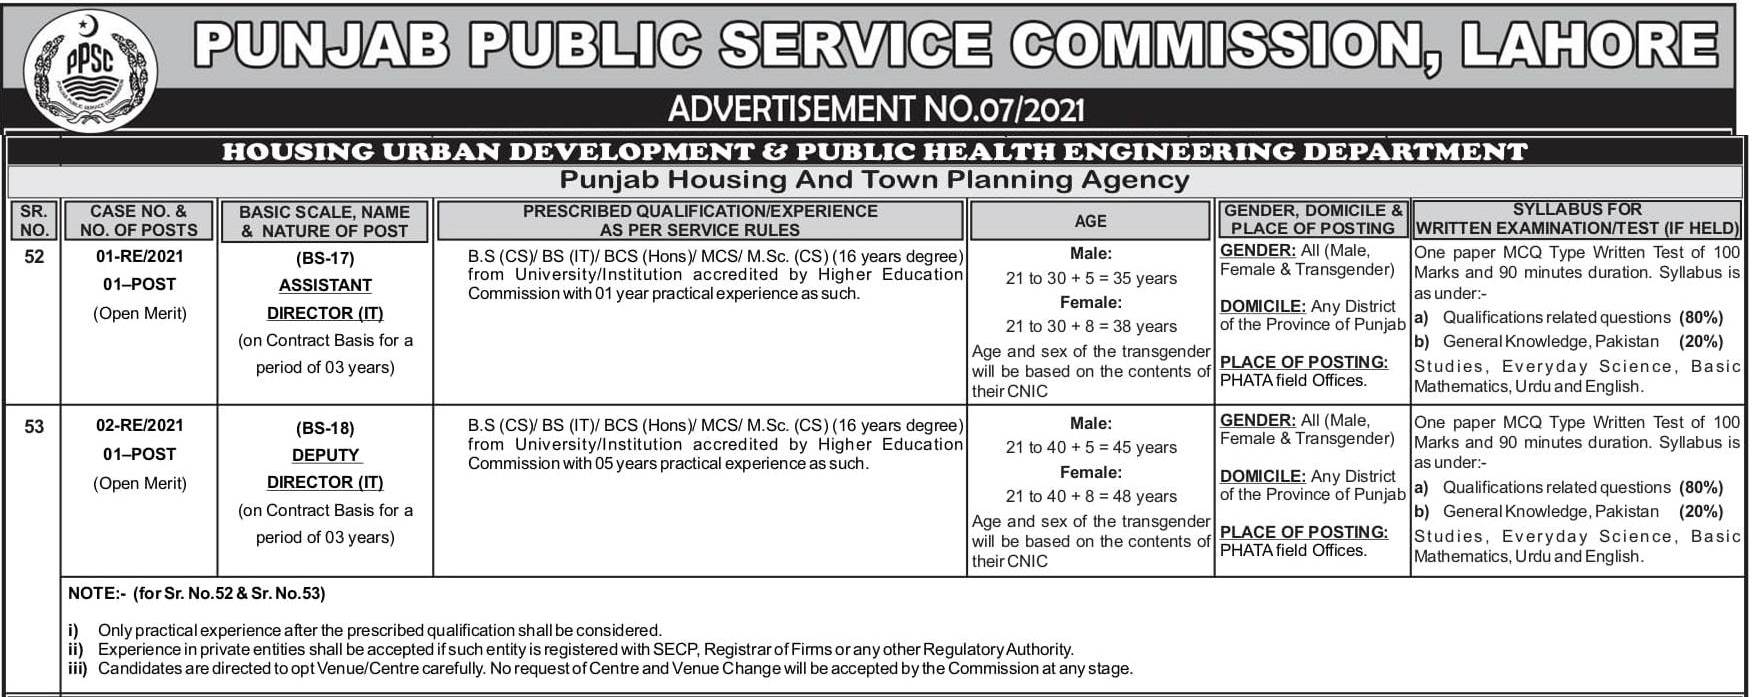 Punjab Housing and Town Planning Agency PPSC Jobs 2021